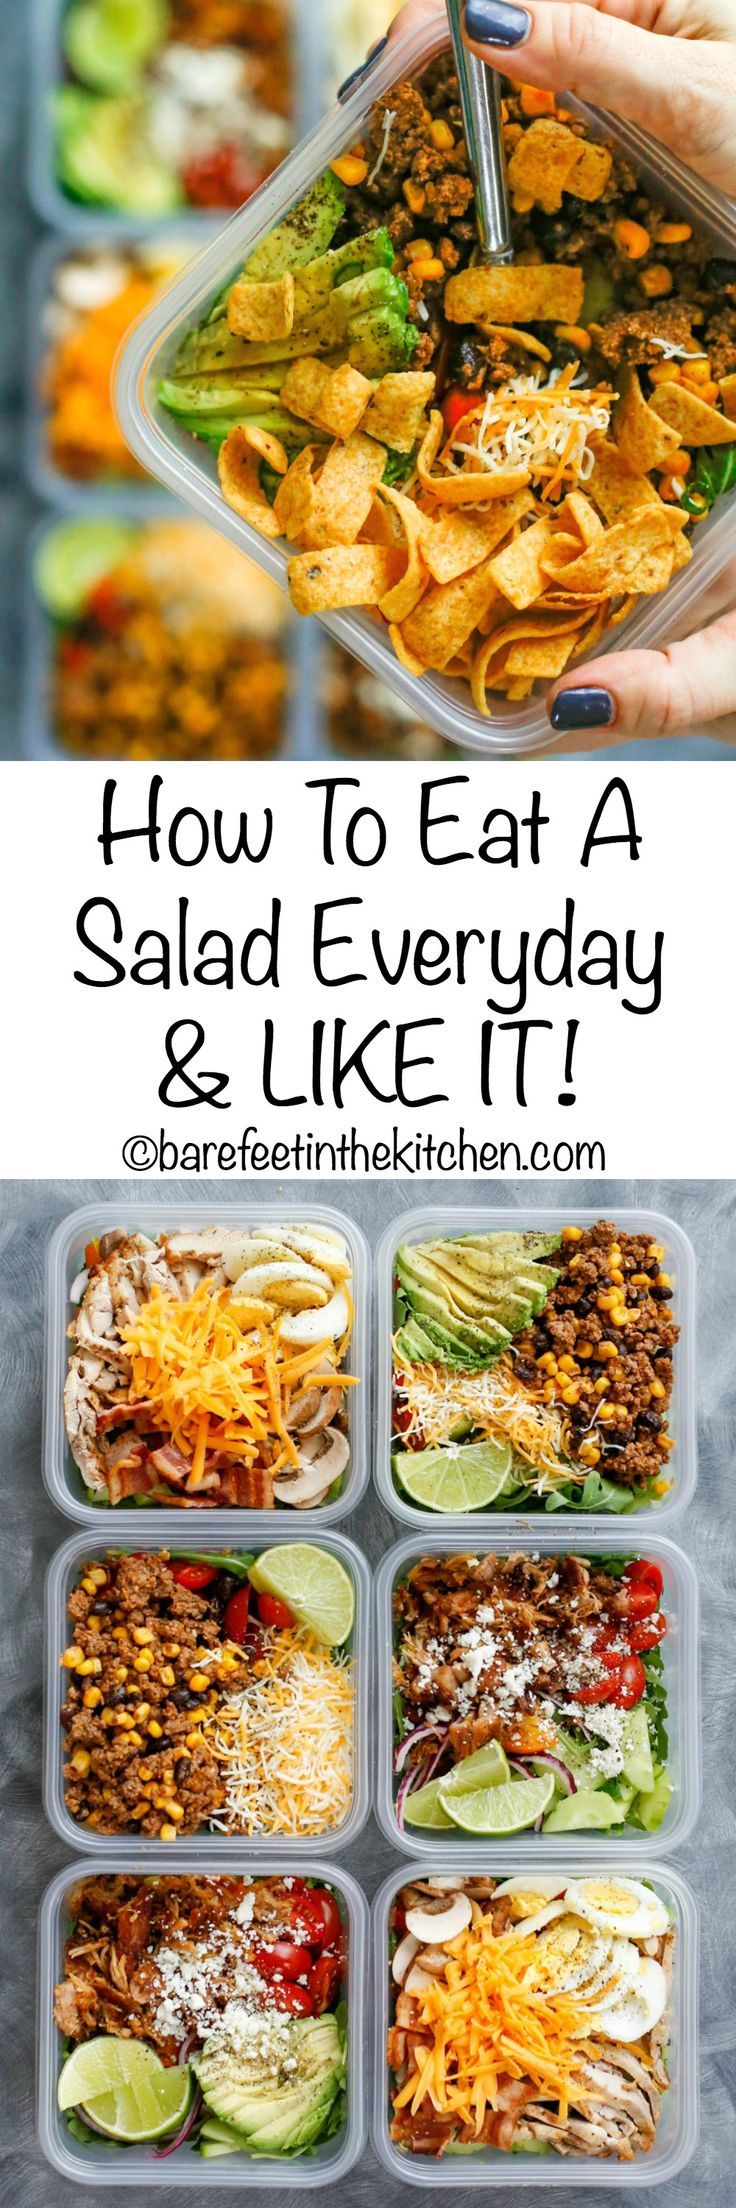 How to eat salad everyday like it aka the fritos everyday diet how to eat salad everyday like it aka the fritos everyday diet get the recipes at barefeetinthekitchen forumfinder Gallery